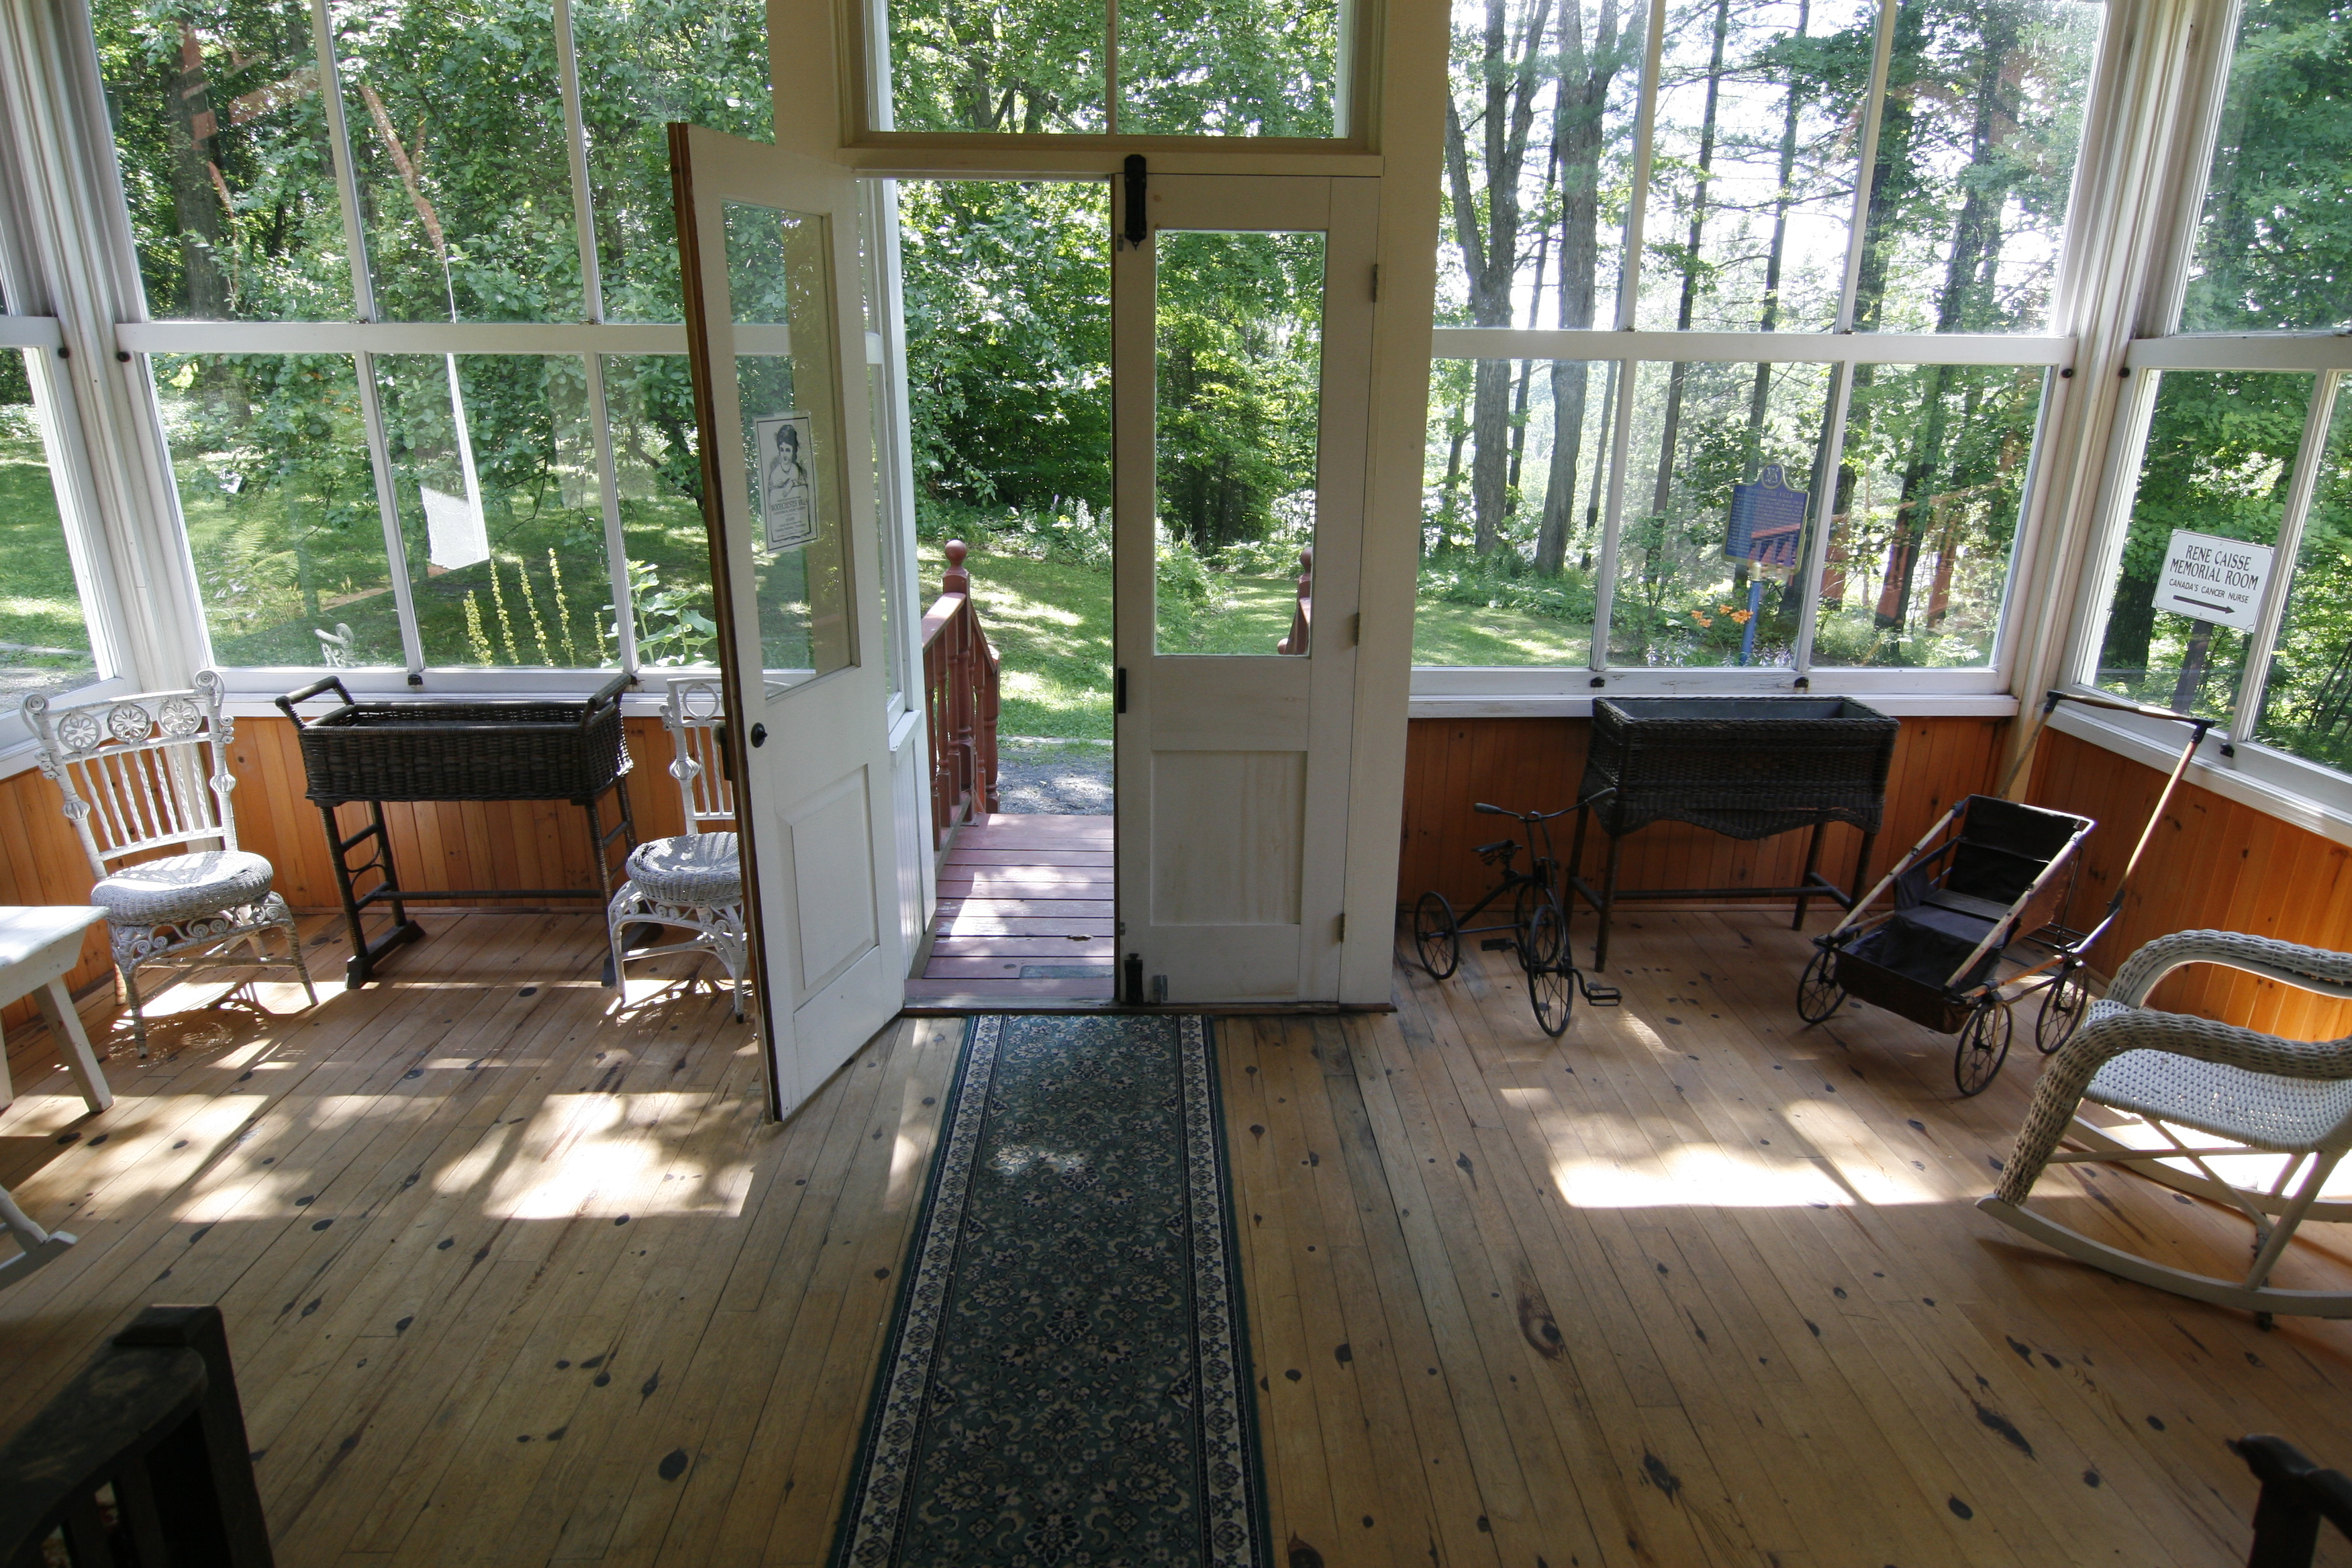 Image of sunroom inside Woodchester